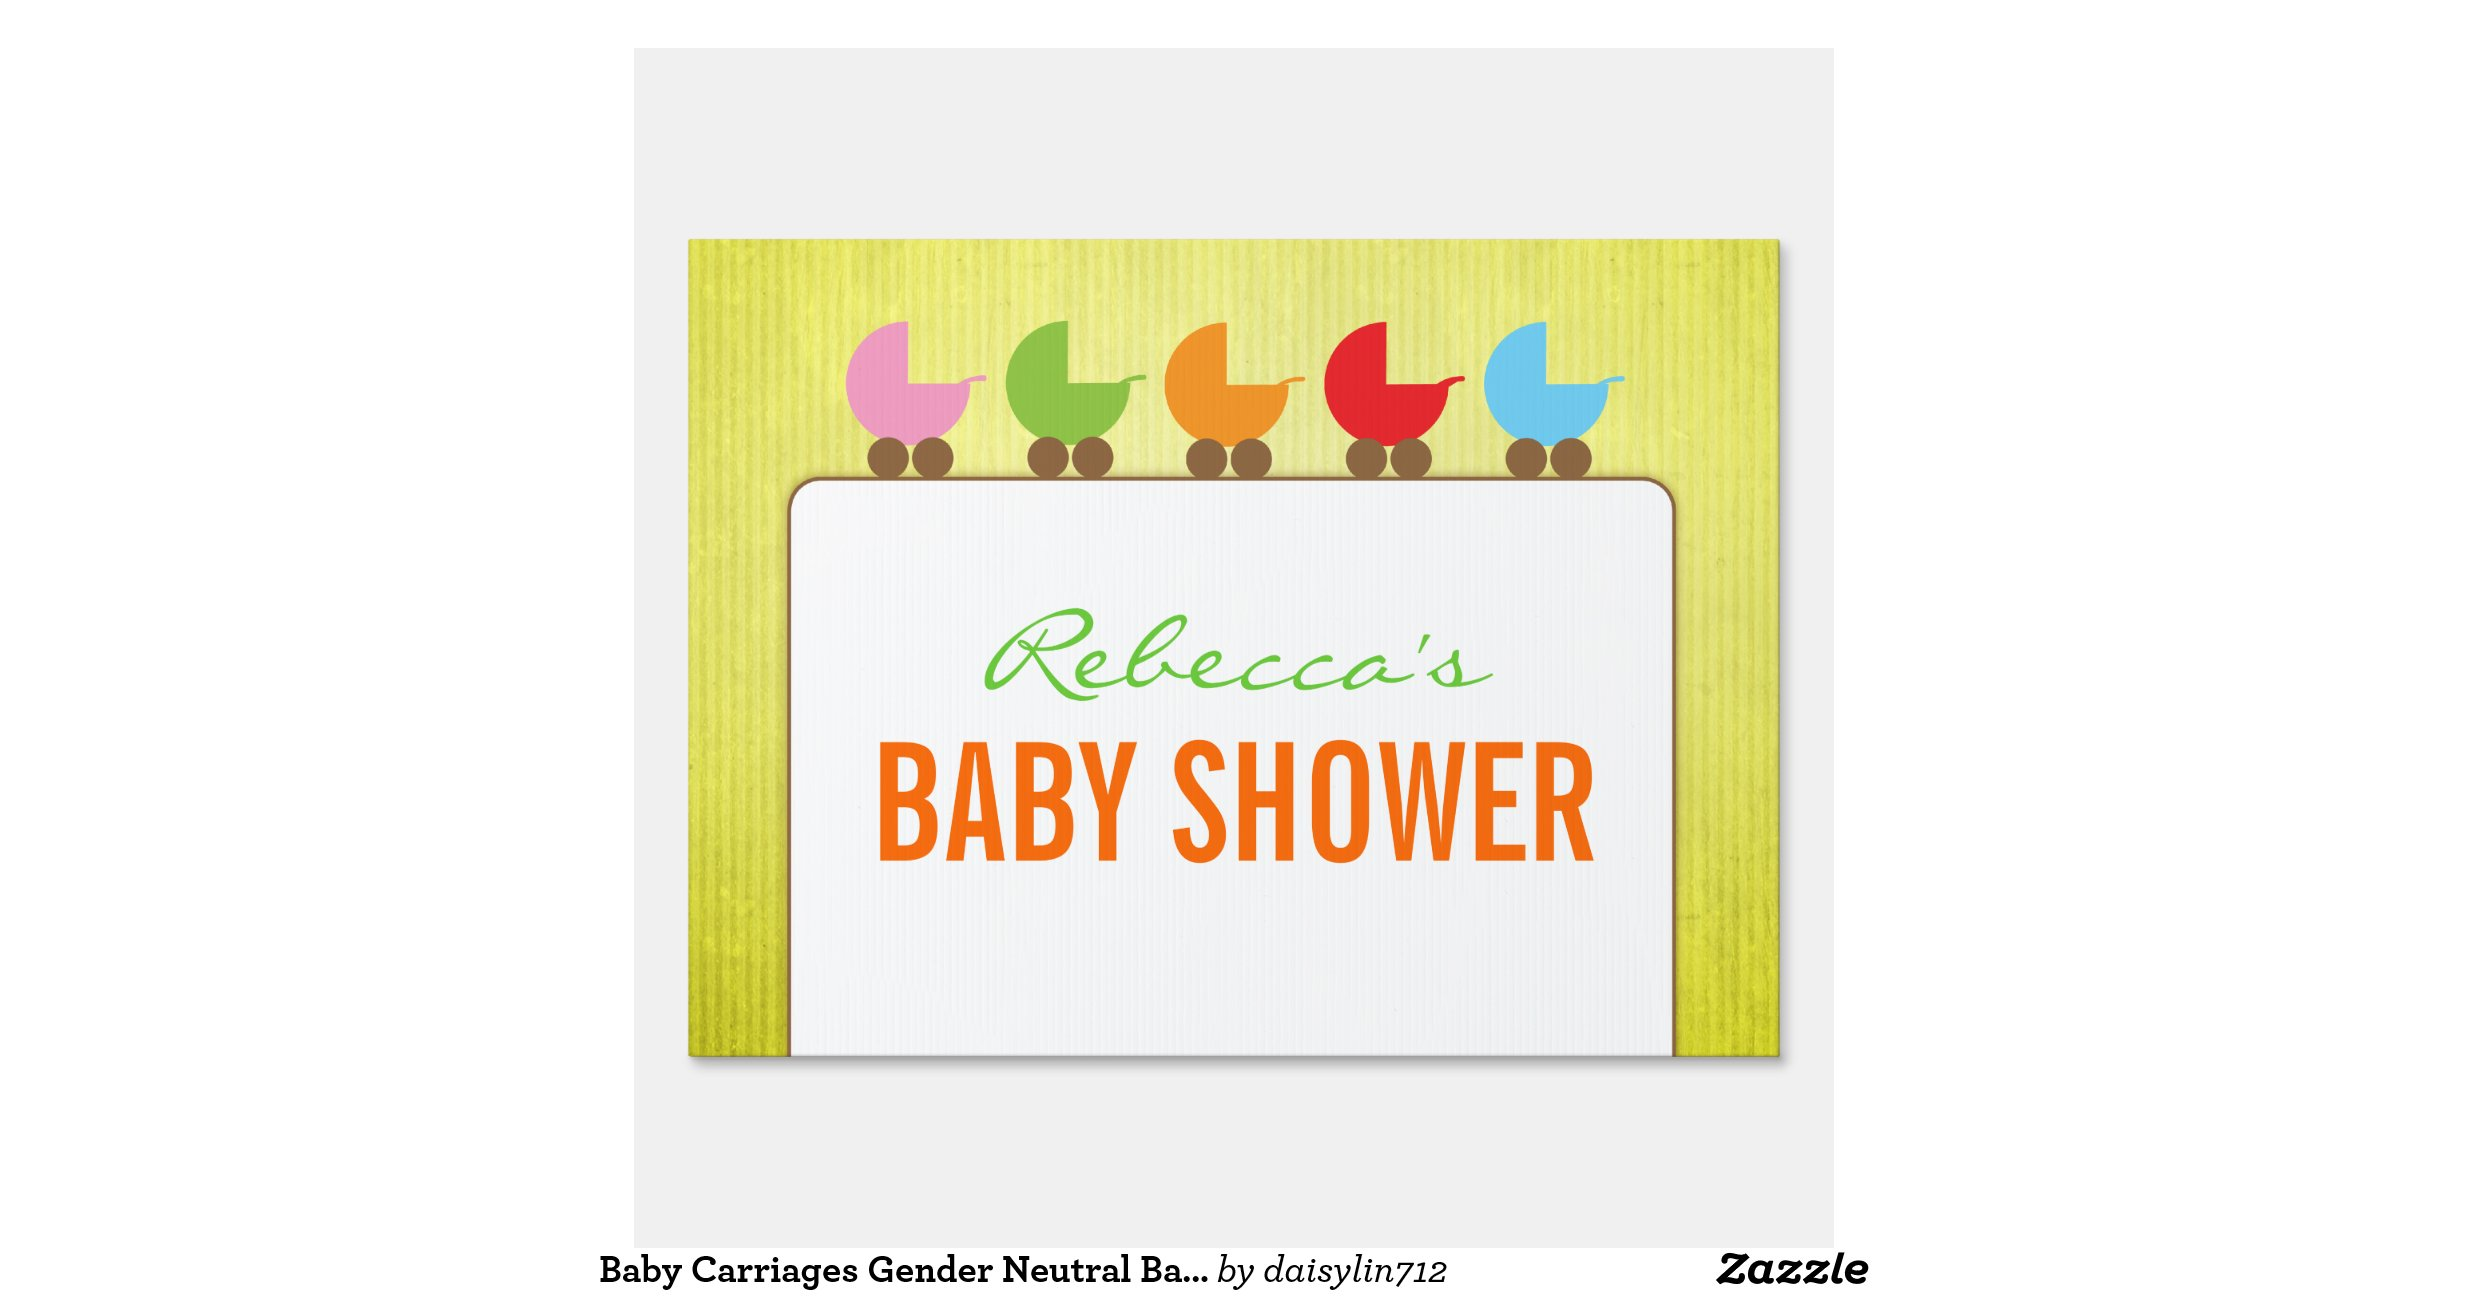 baby carriages gender neutral baby shower lawn sign zazzle